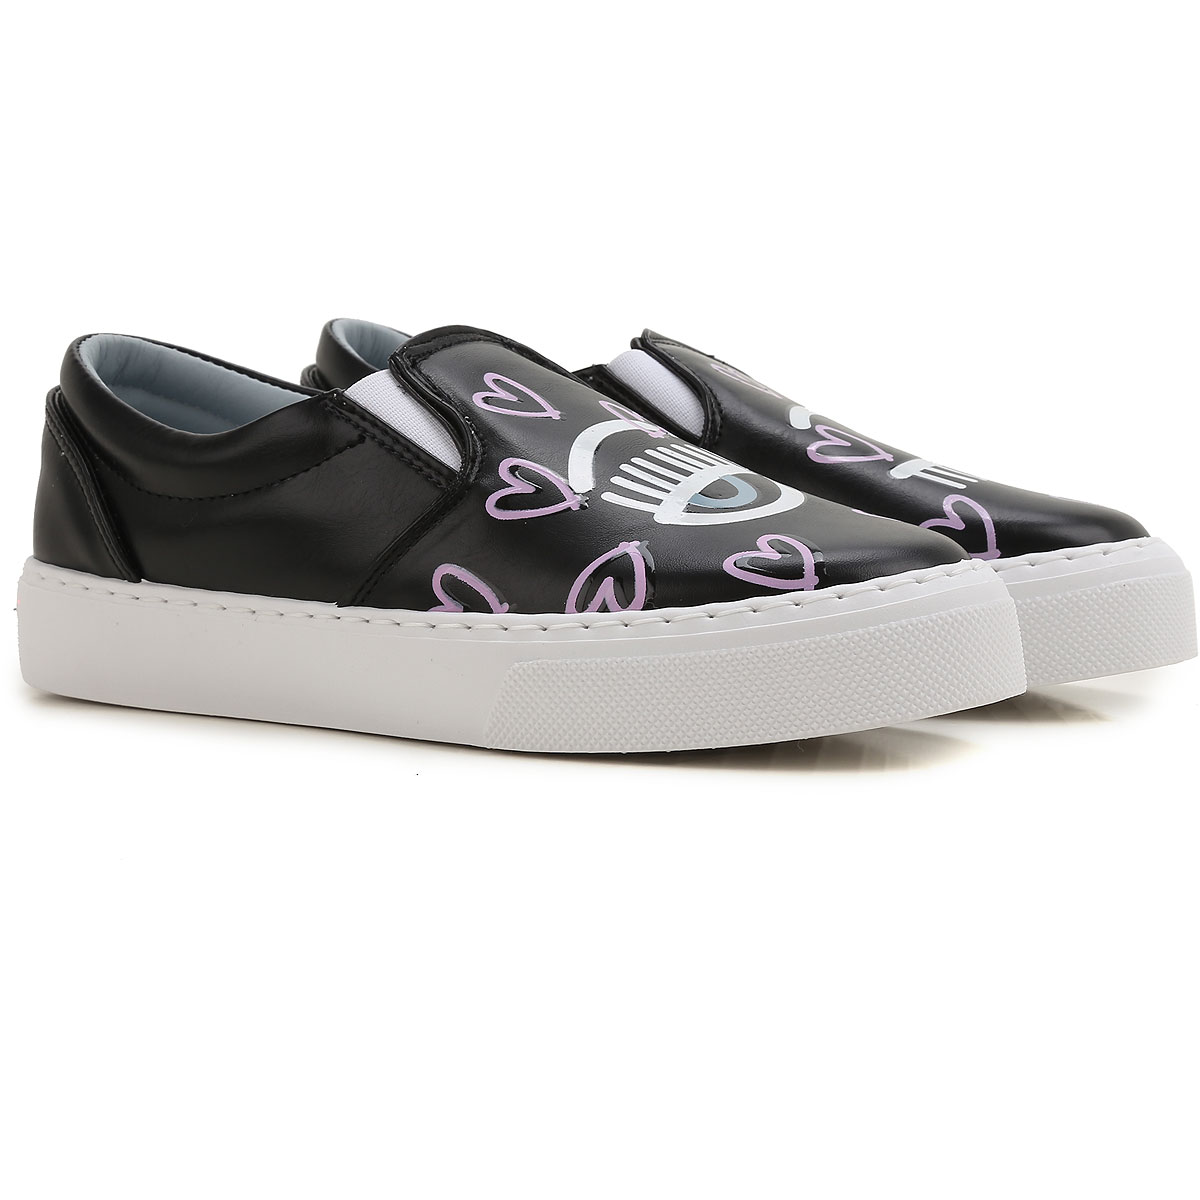 Black With Pink Slip On Shoes With Elastic